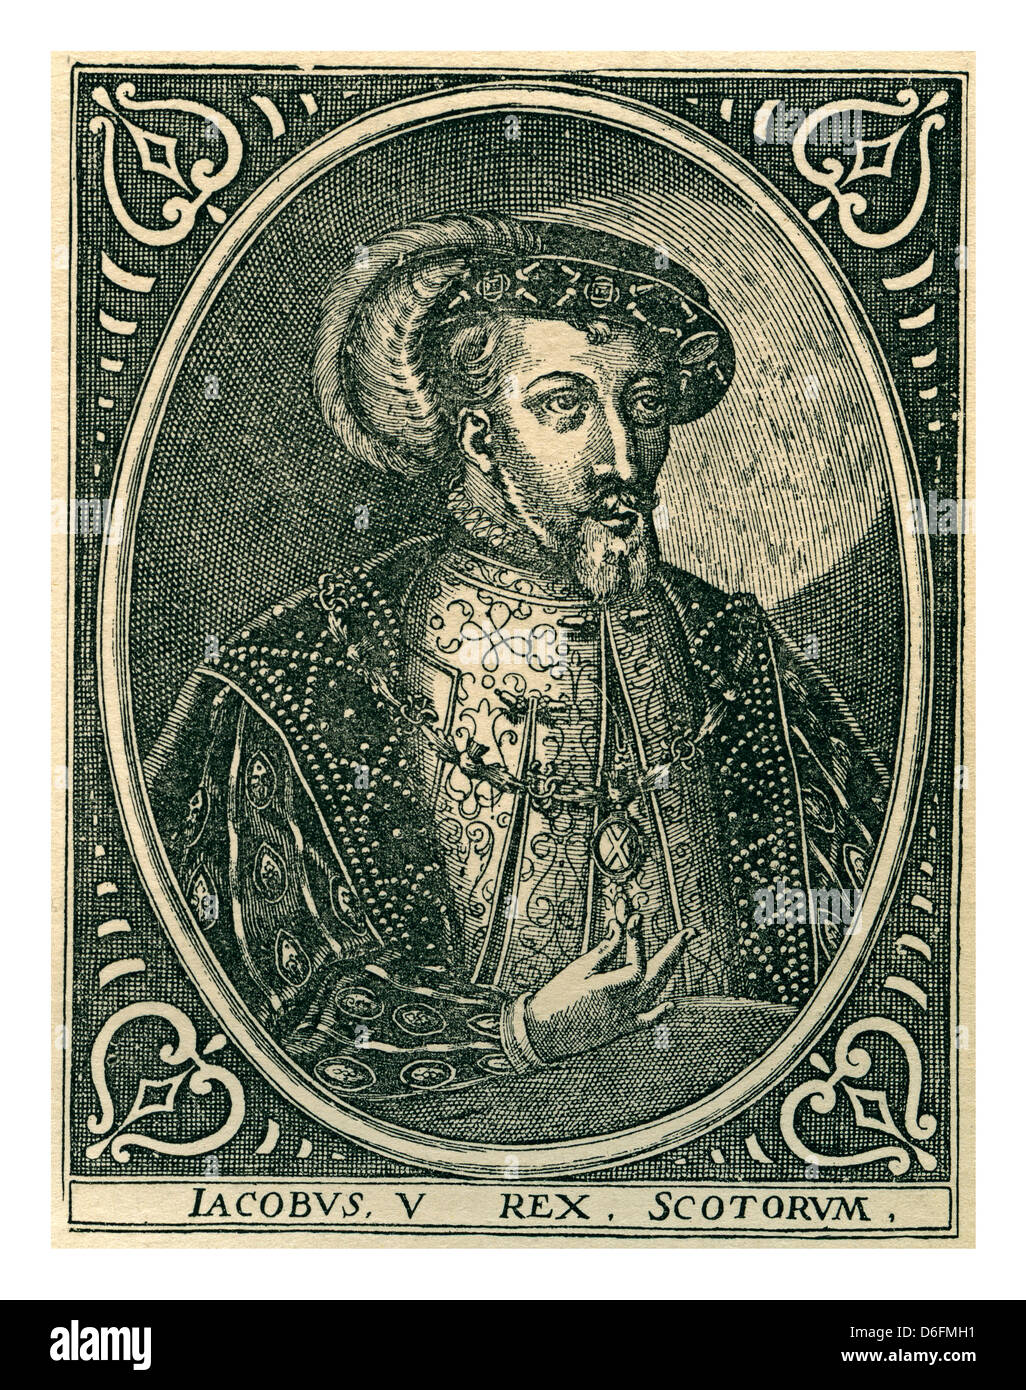 James V (10 April 1512 – 14 December 1542) was King of Scots from 9 September 1513 until his death in1542 - Stock Image